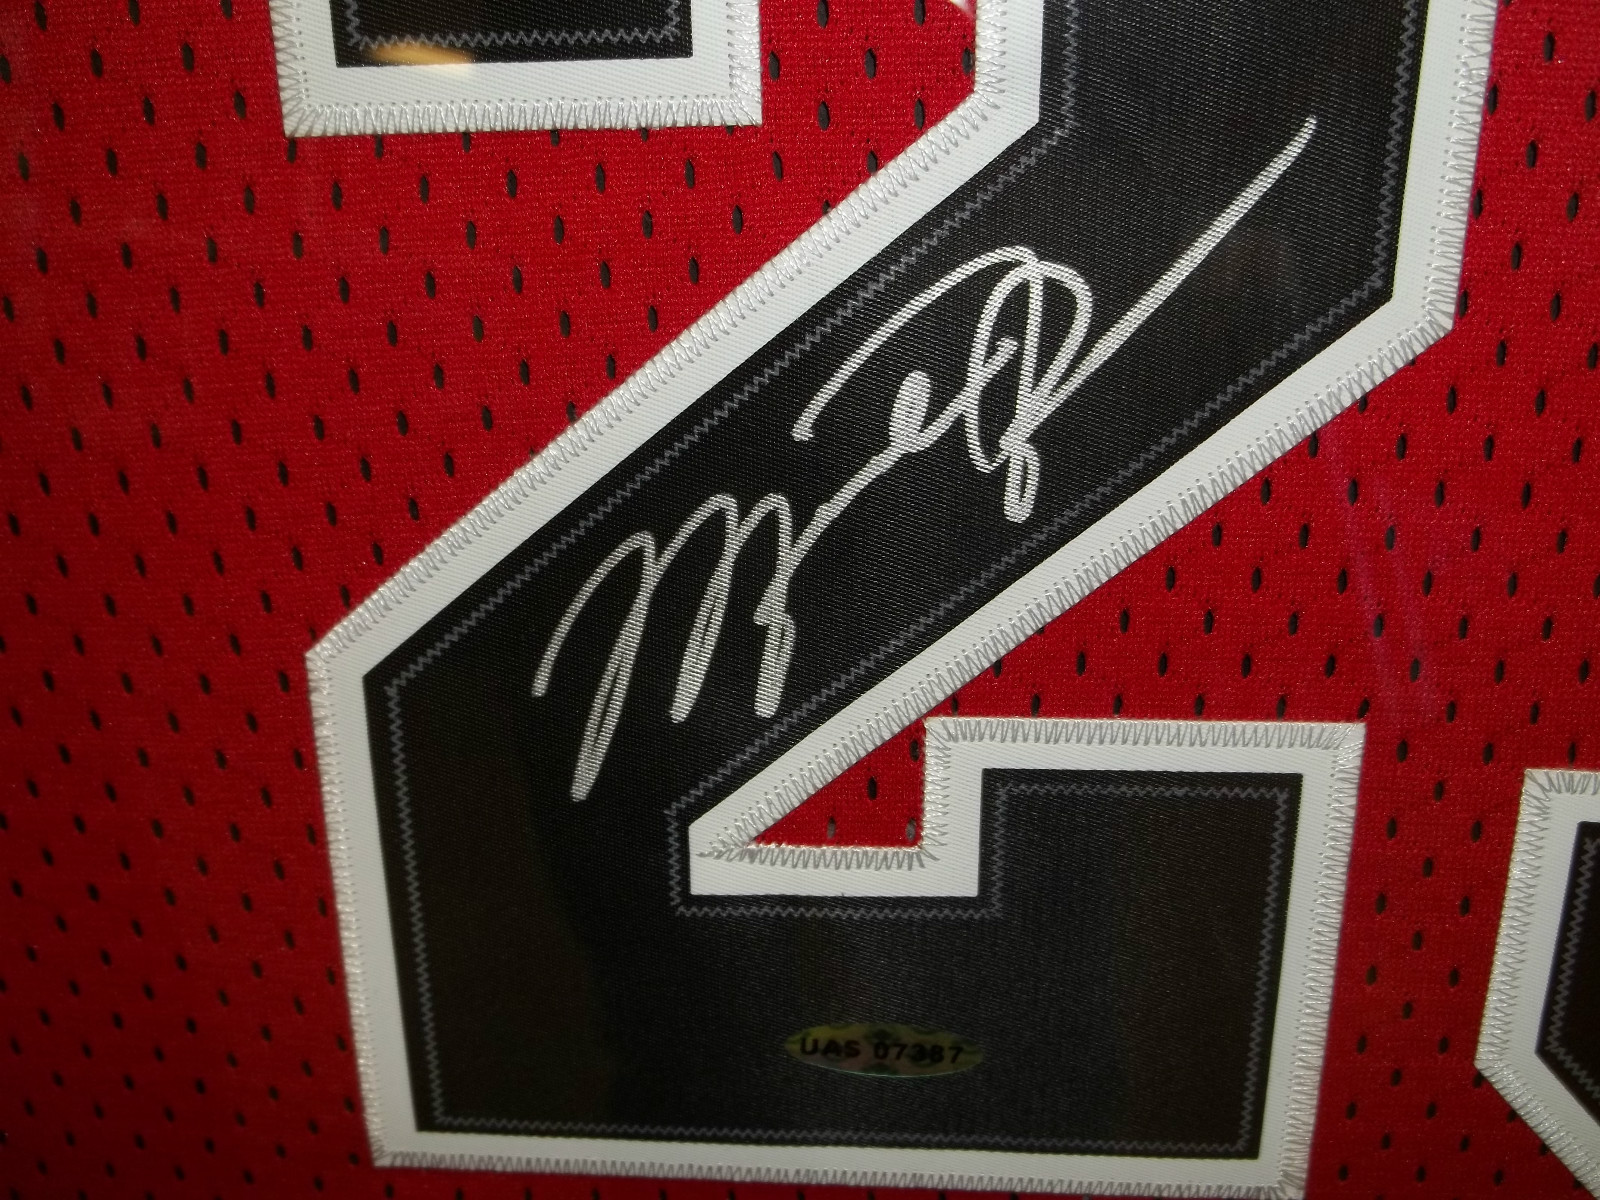 48c45043106 Signed Jersey Pricing: Active Listings for Michael Jordan Signed Jerseys